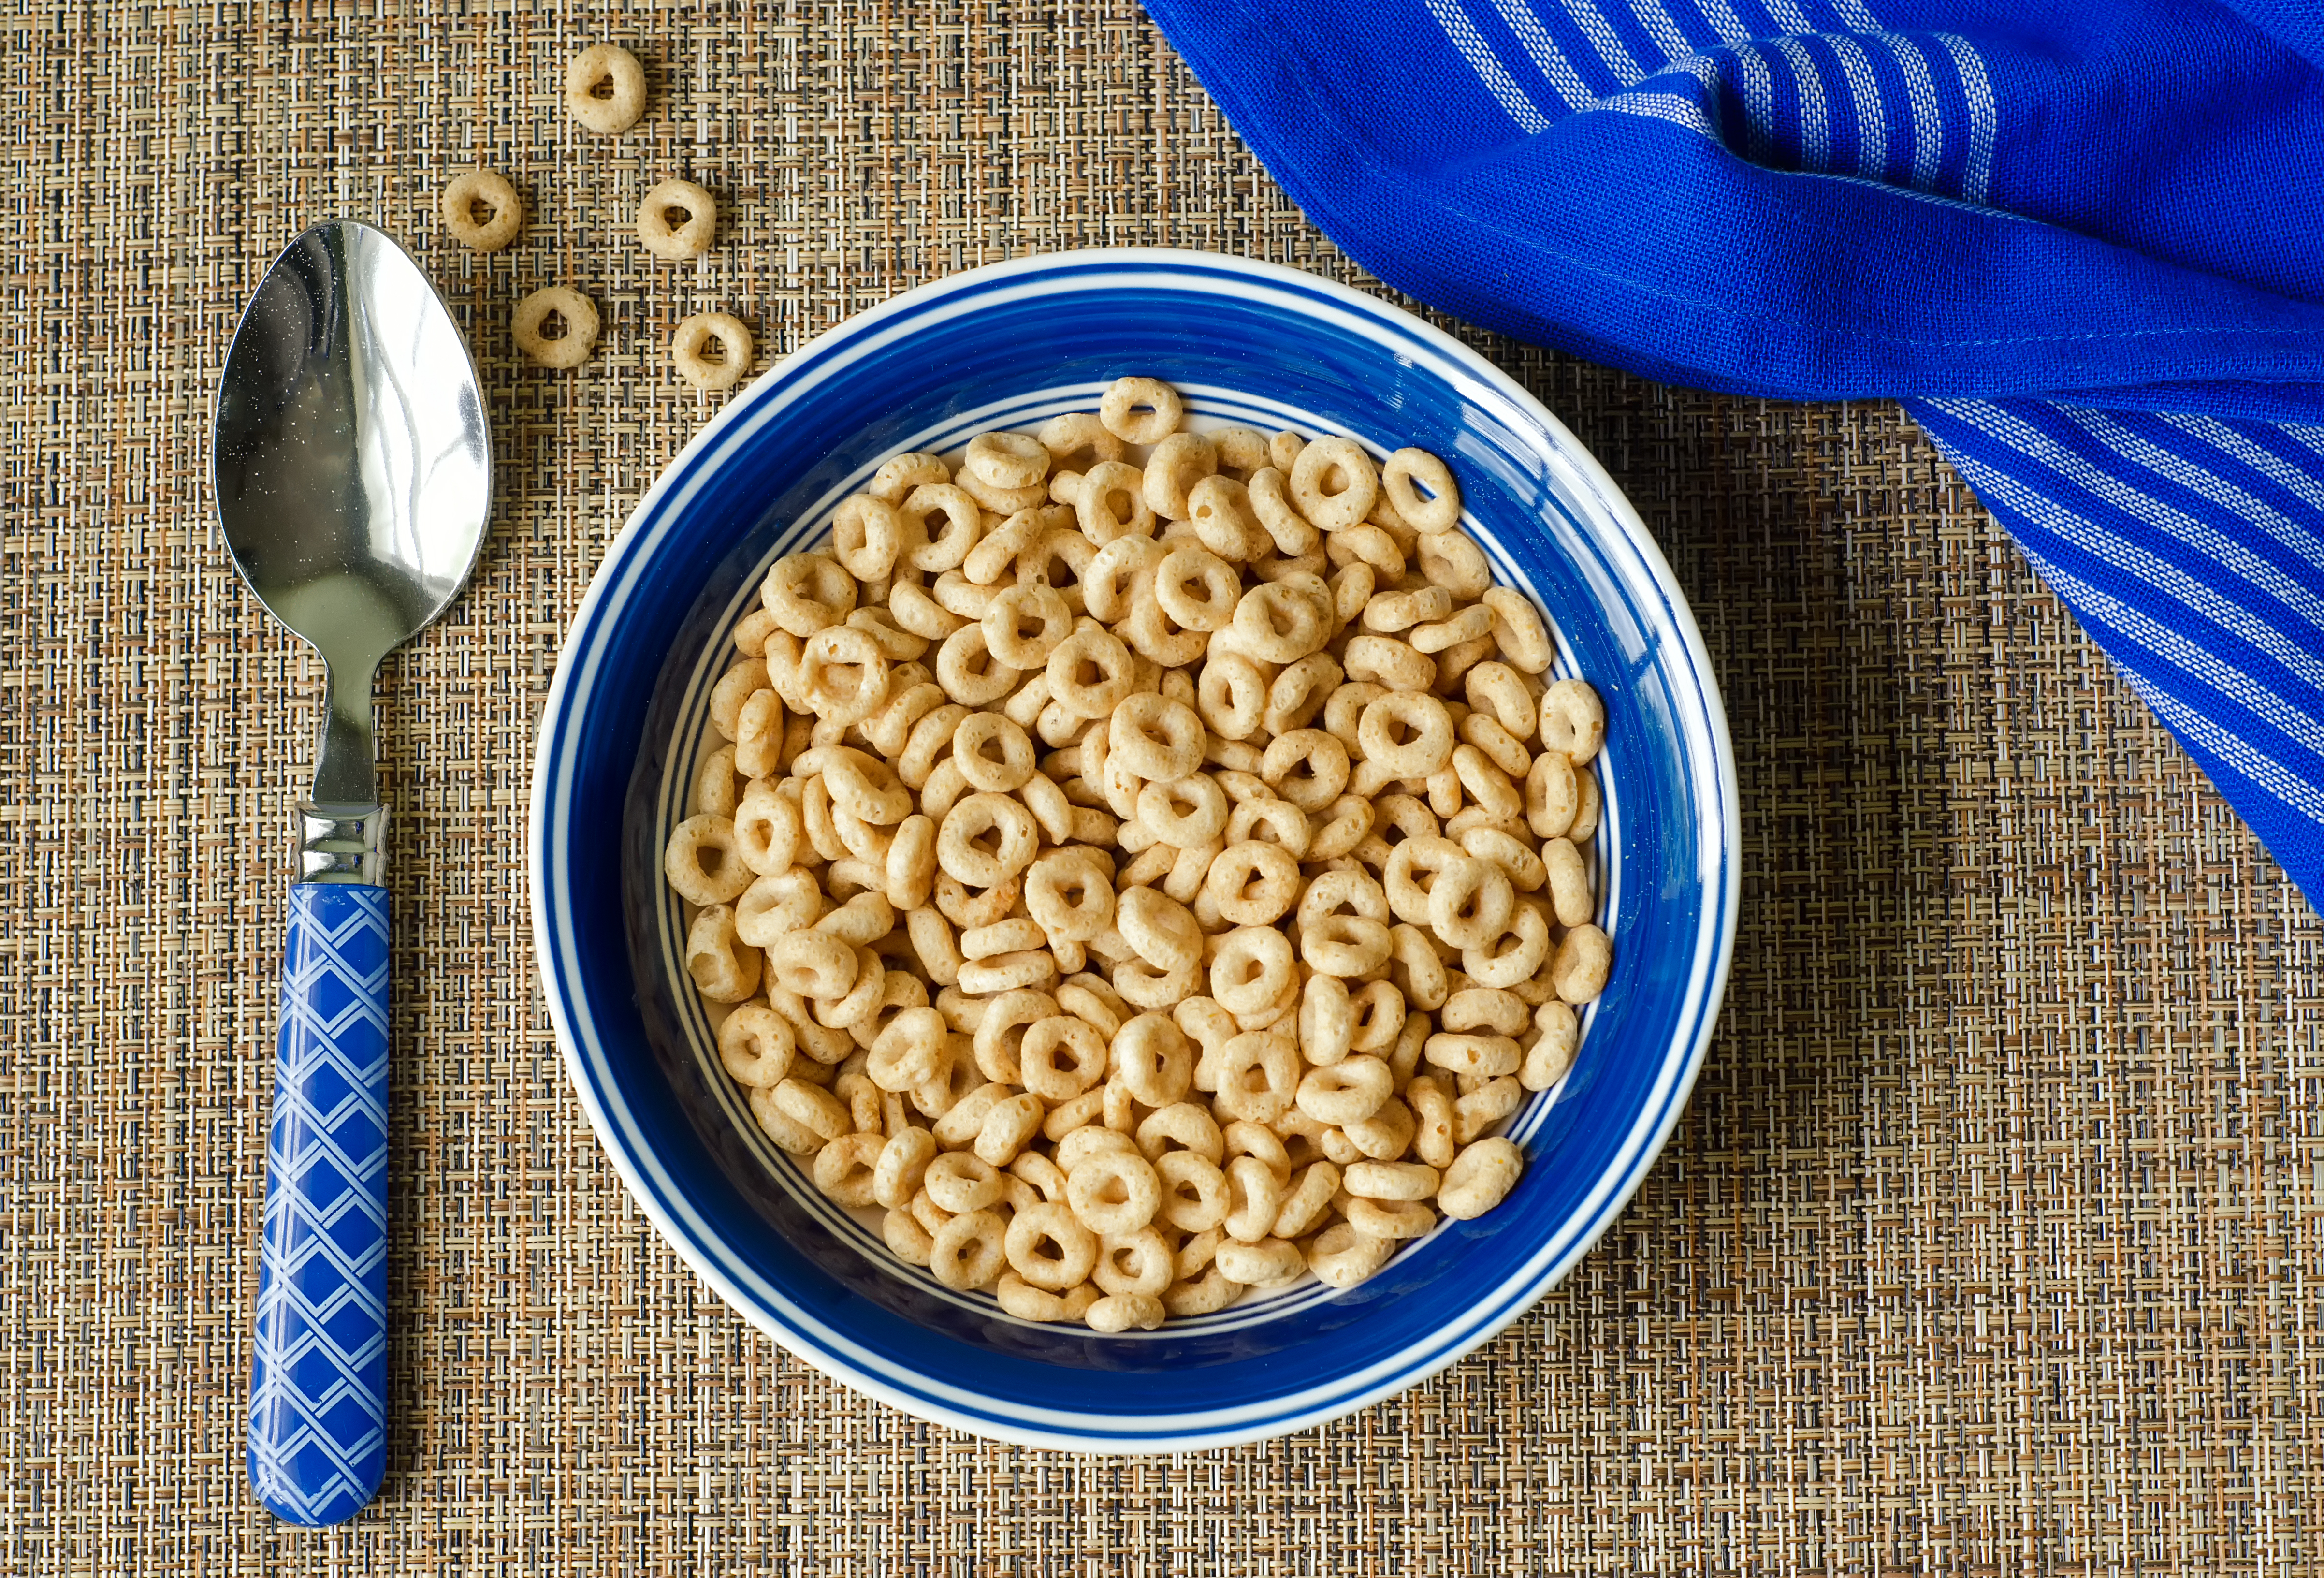 are cheerios healthy? | livestrong